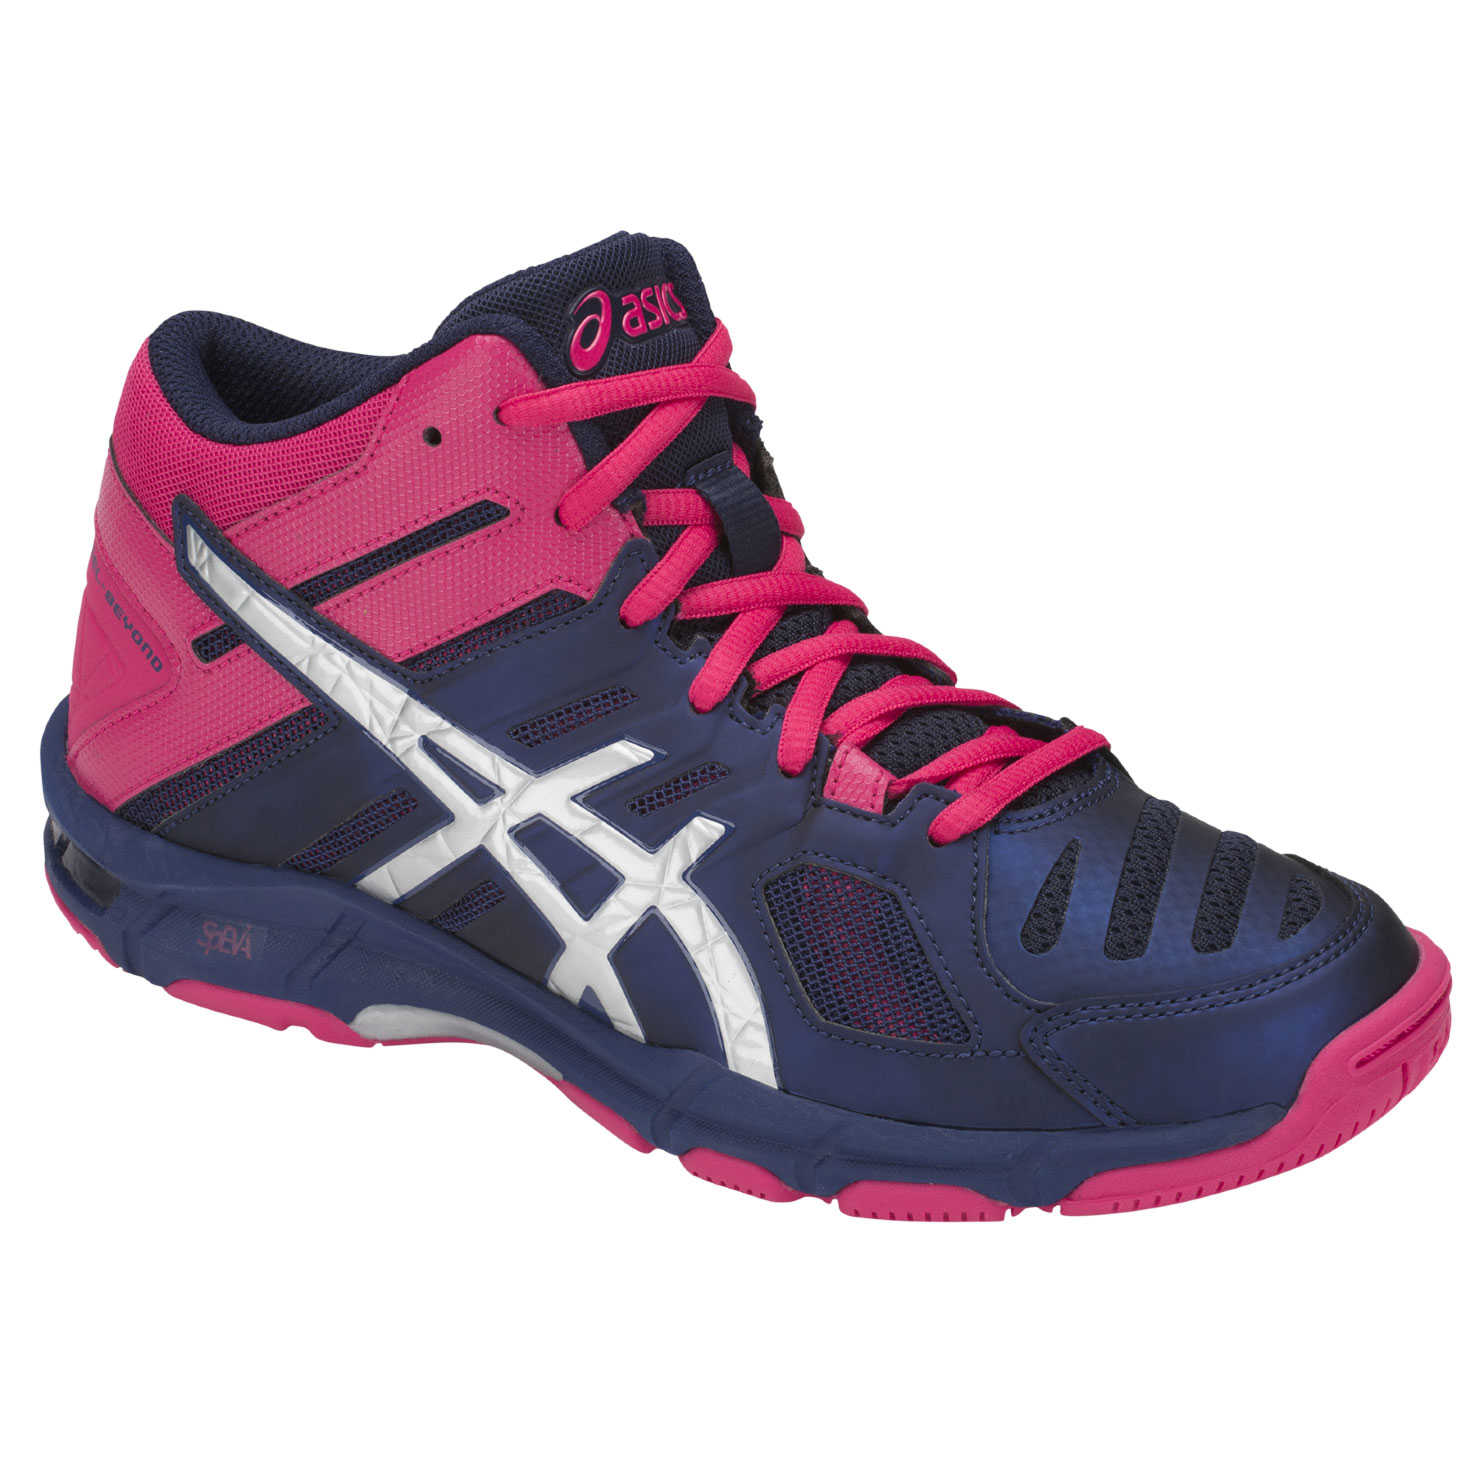 Chaussures de Volleyball Gel-Beyond 5 MT - Blue Print Silver